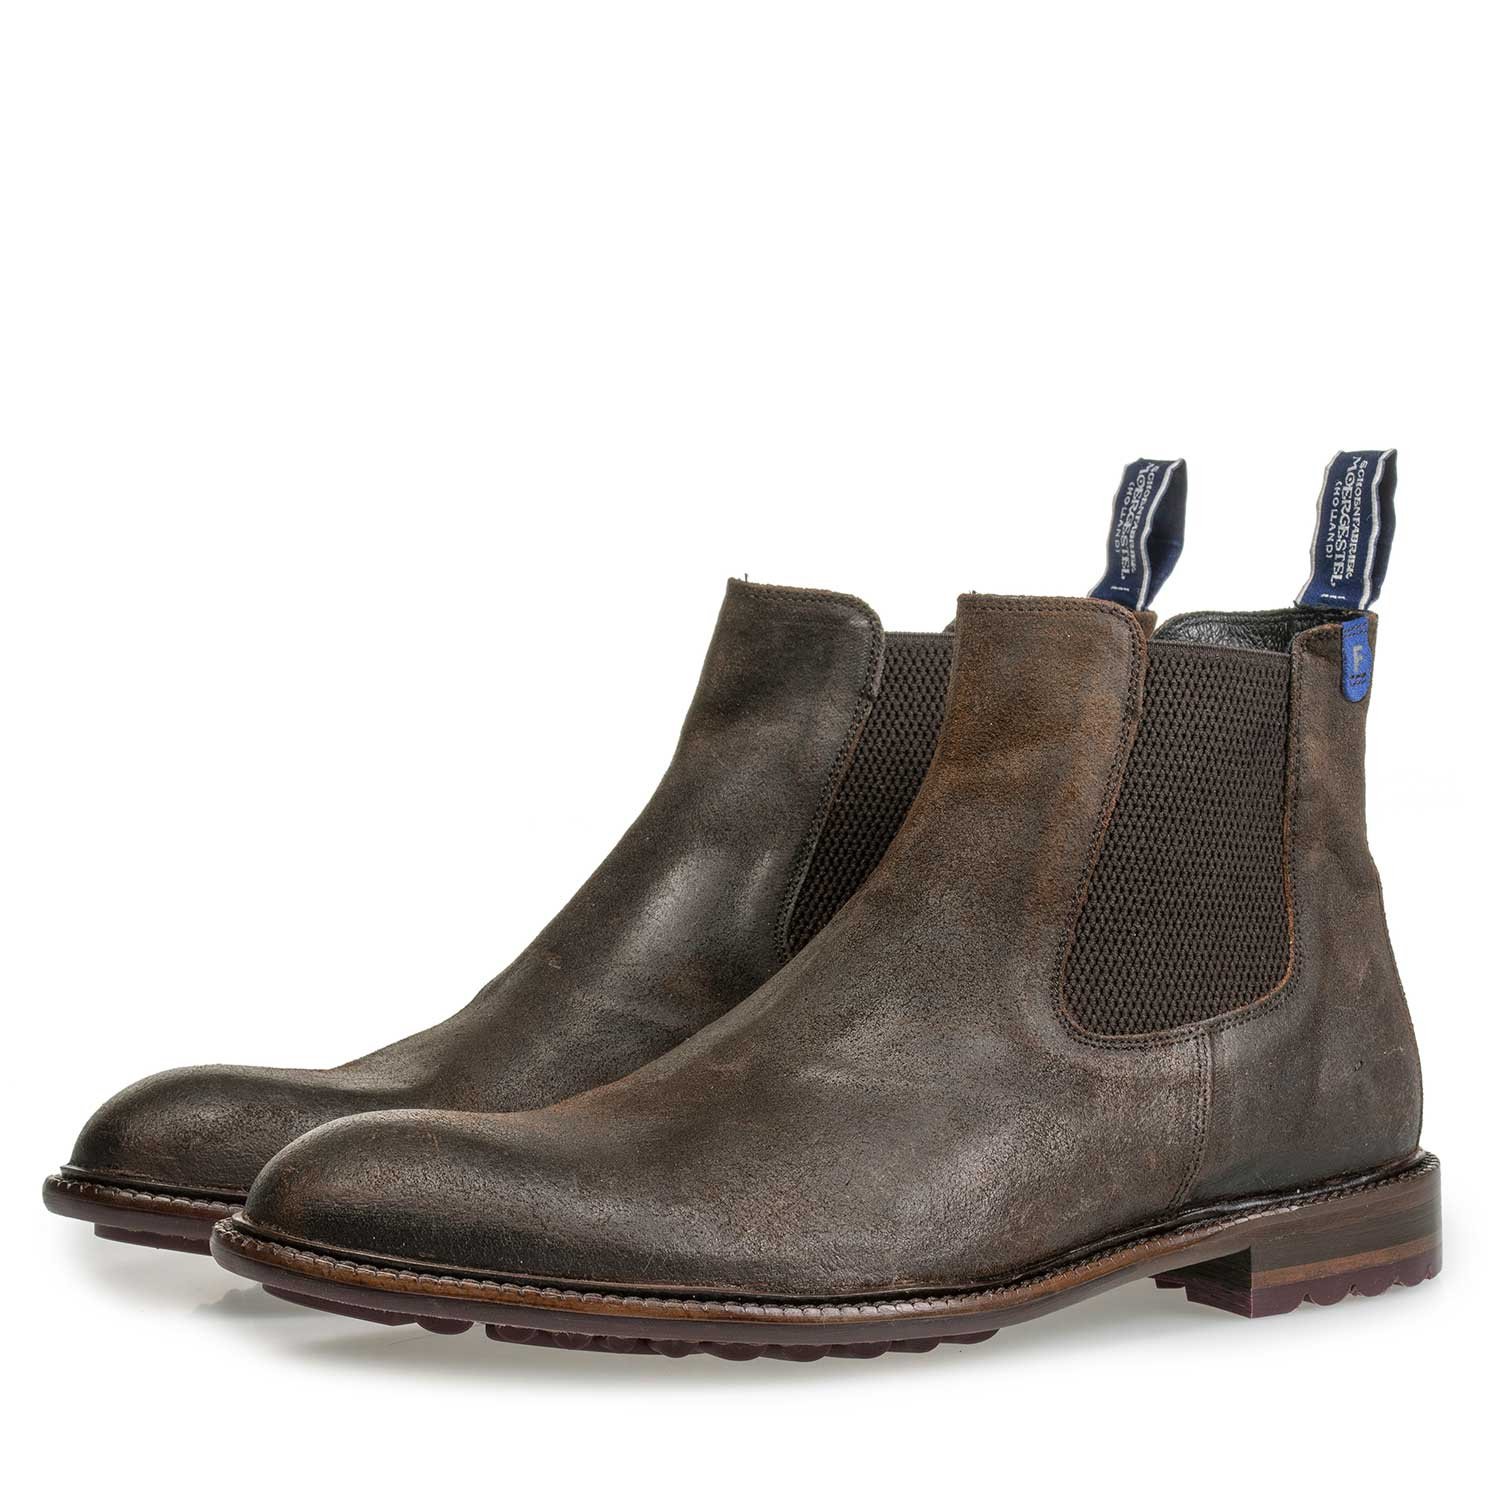 10902/05 - Brown suede leather Chelsea boot